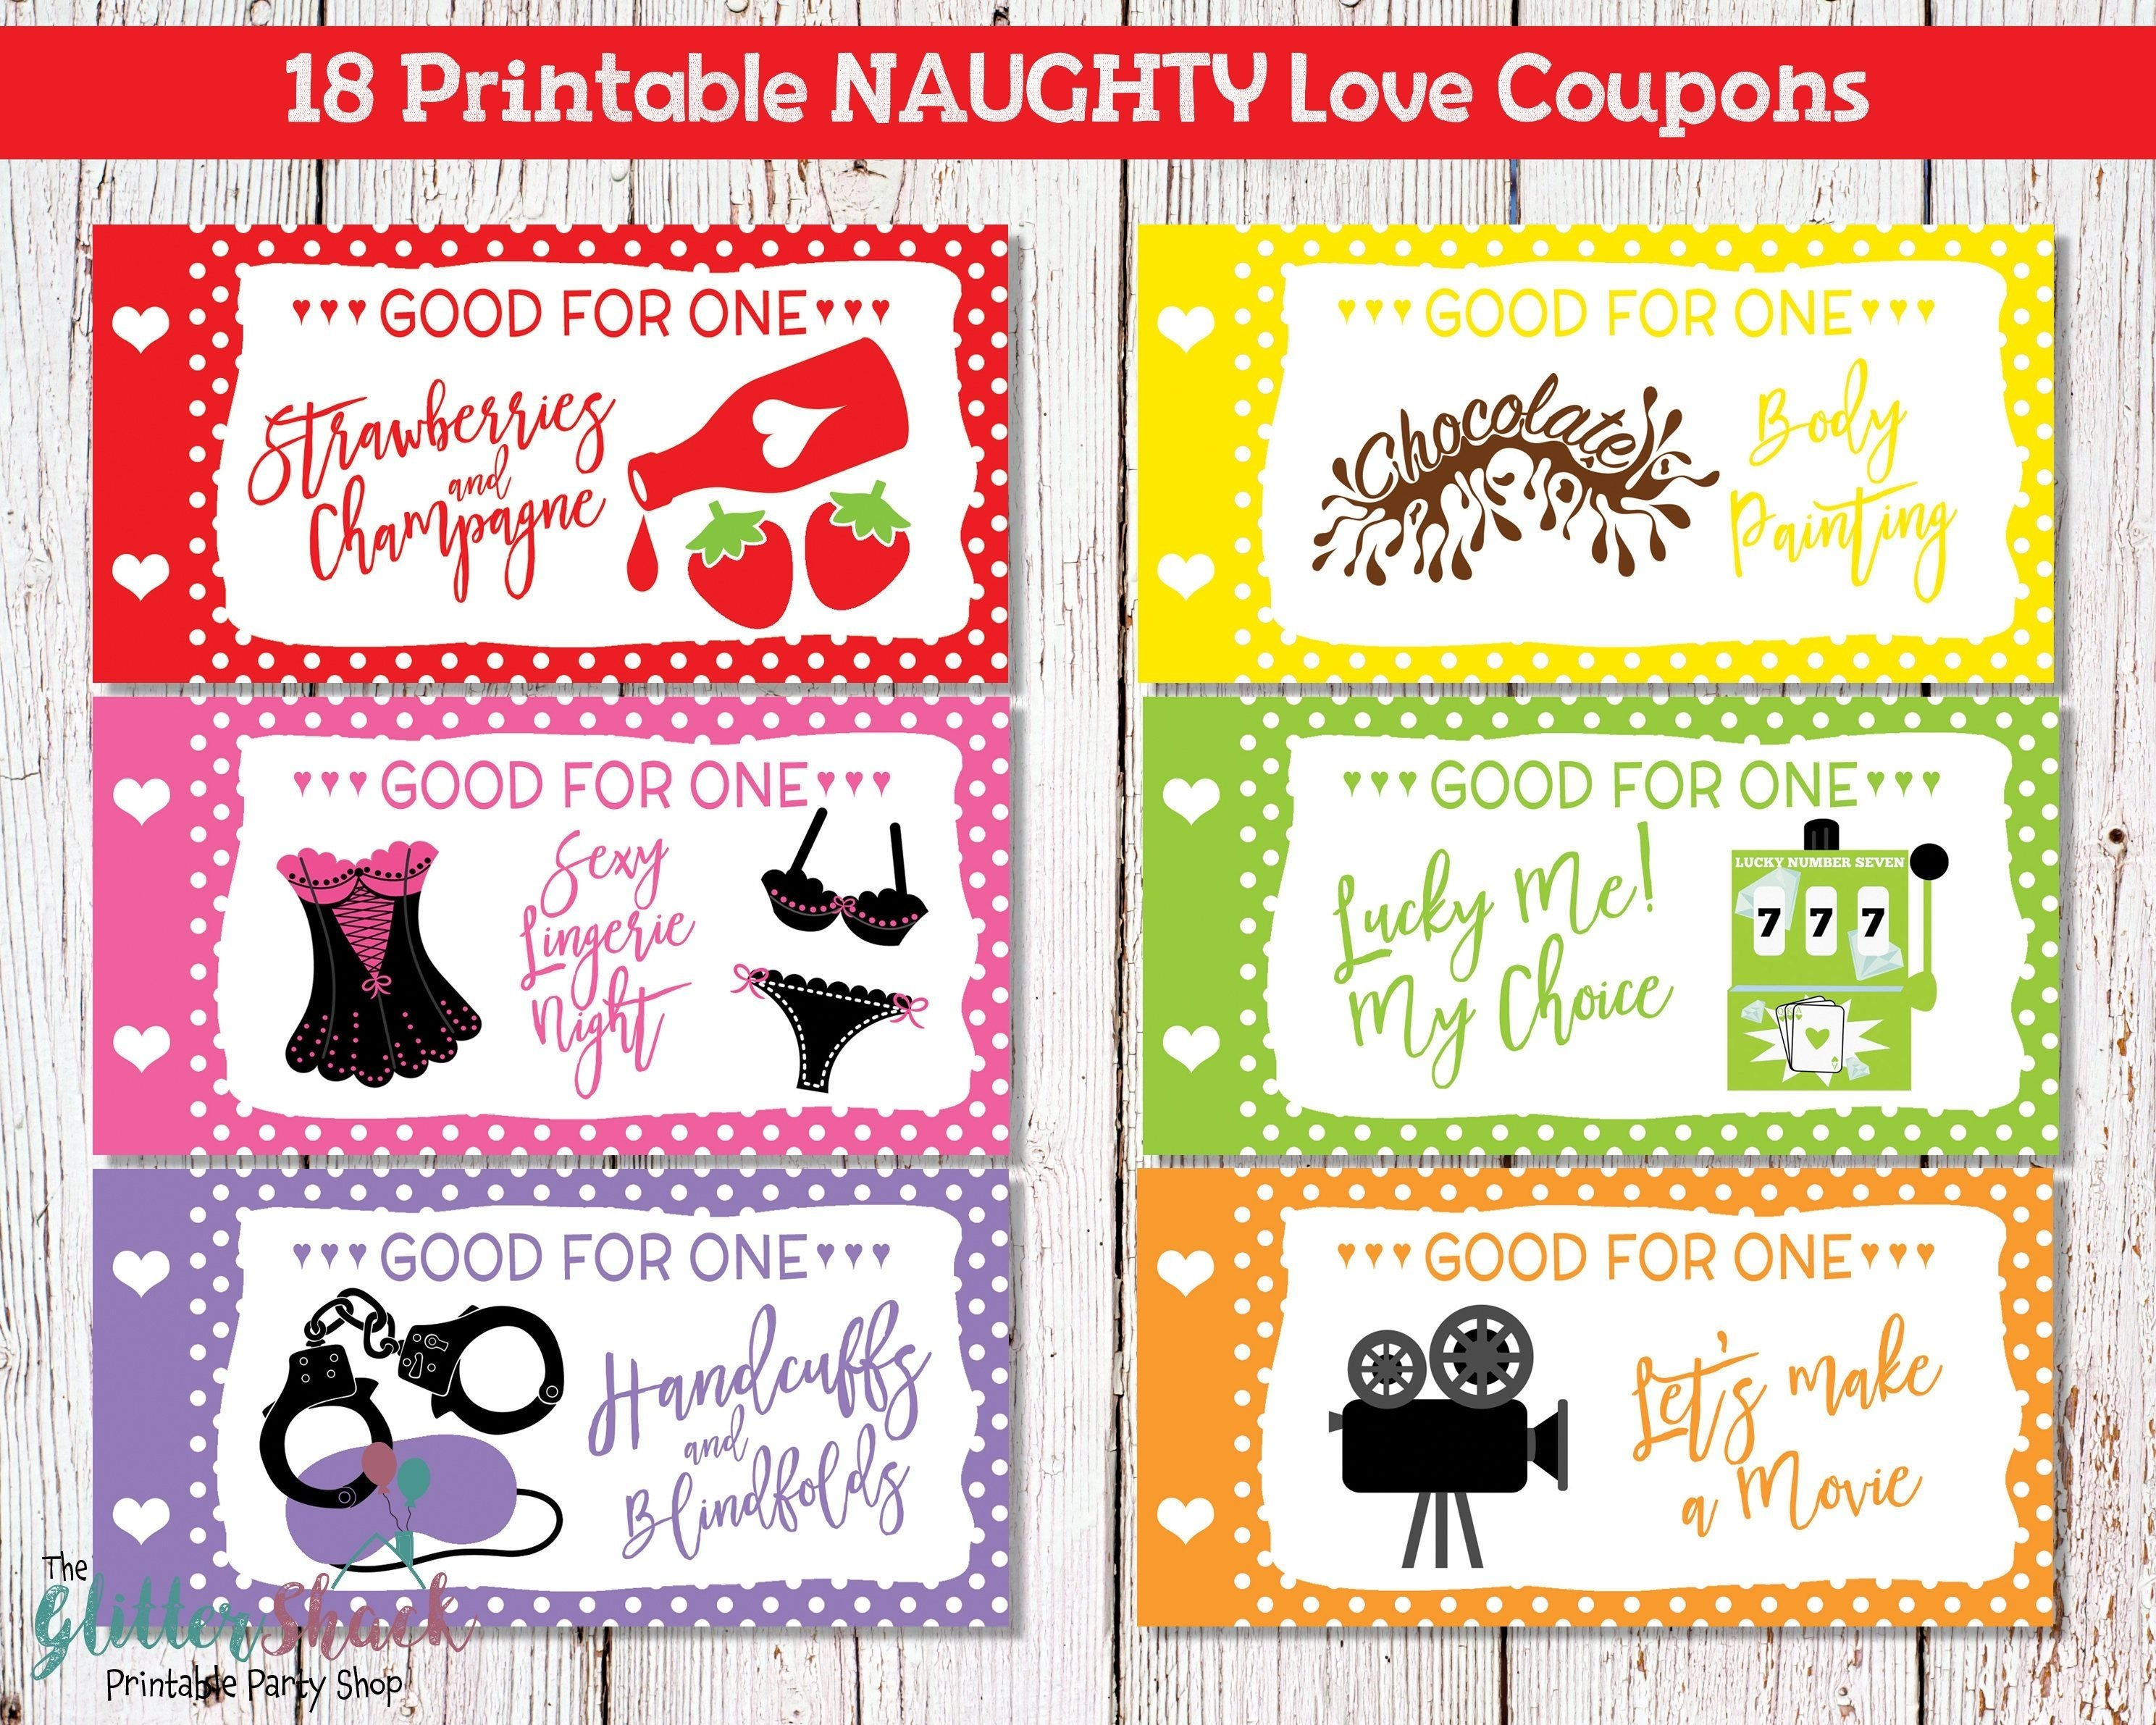 10 Perfect Love Coupon Ideas For Husband printable naughty love coupons for men husband boyfriend sexy 1 2020